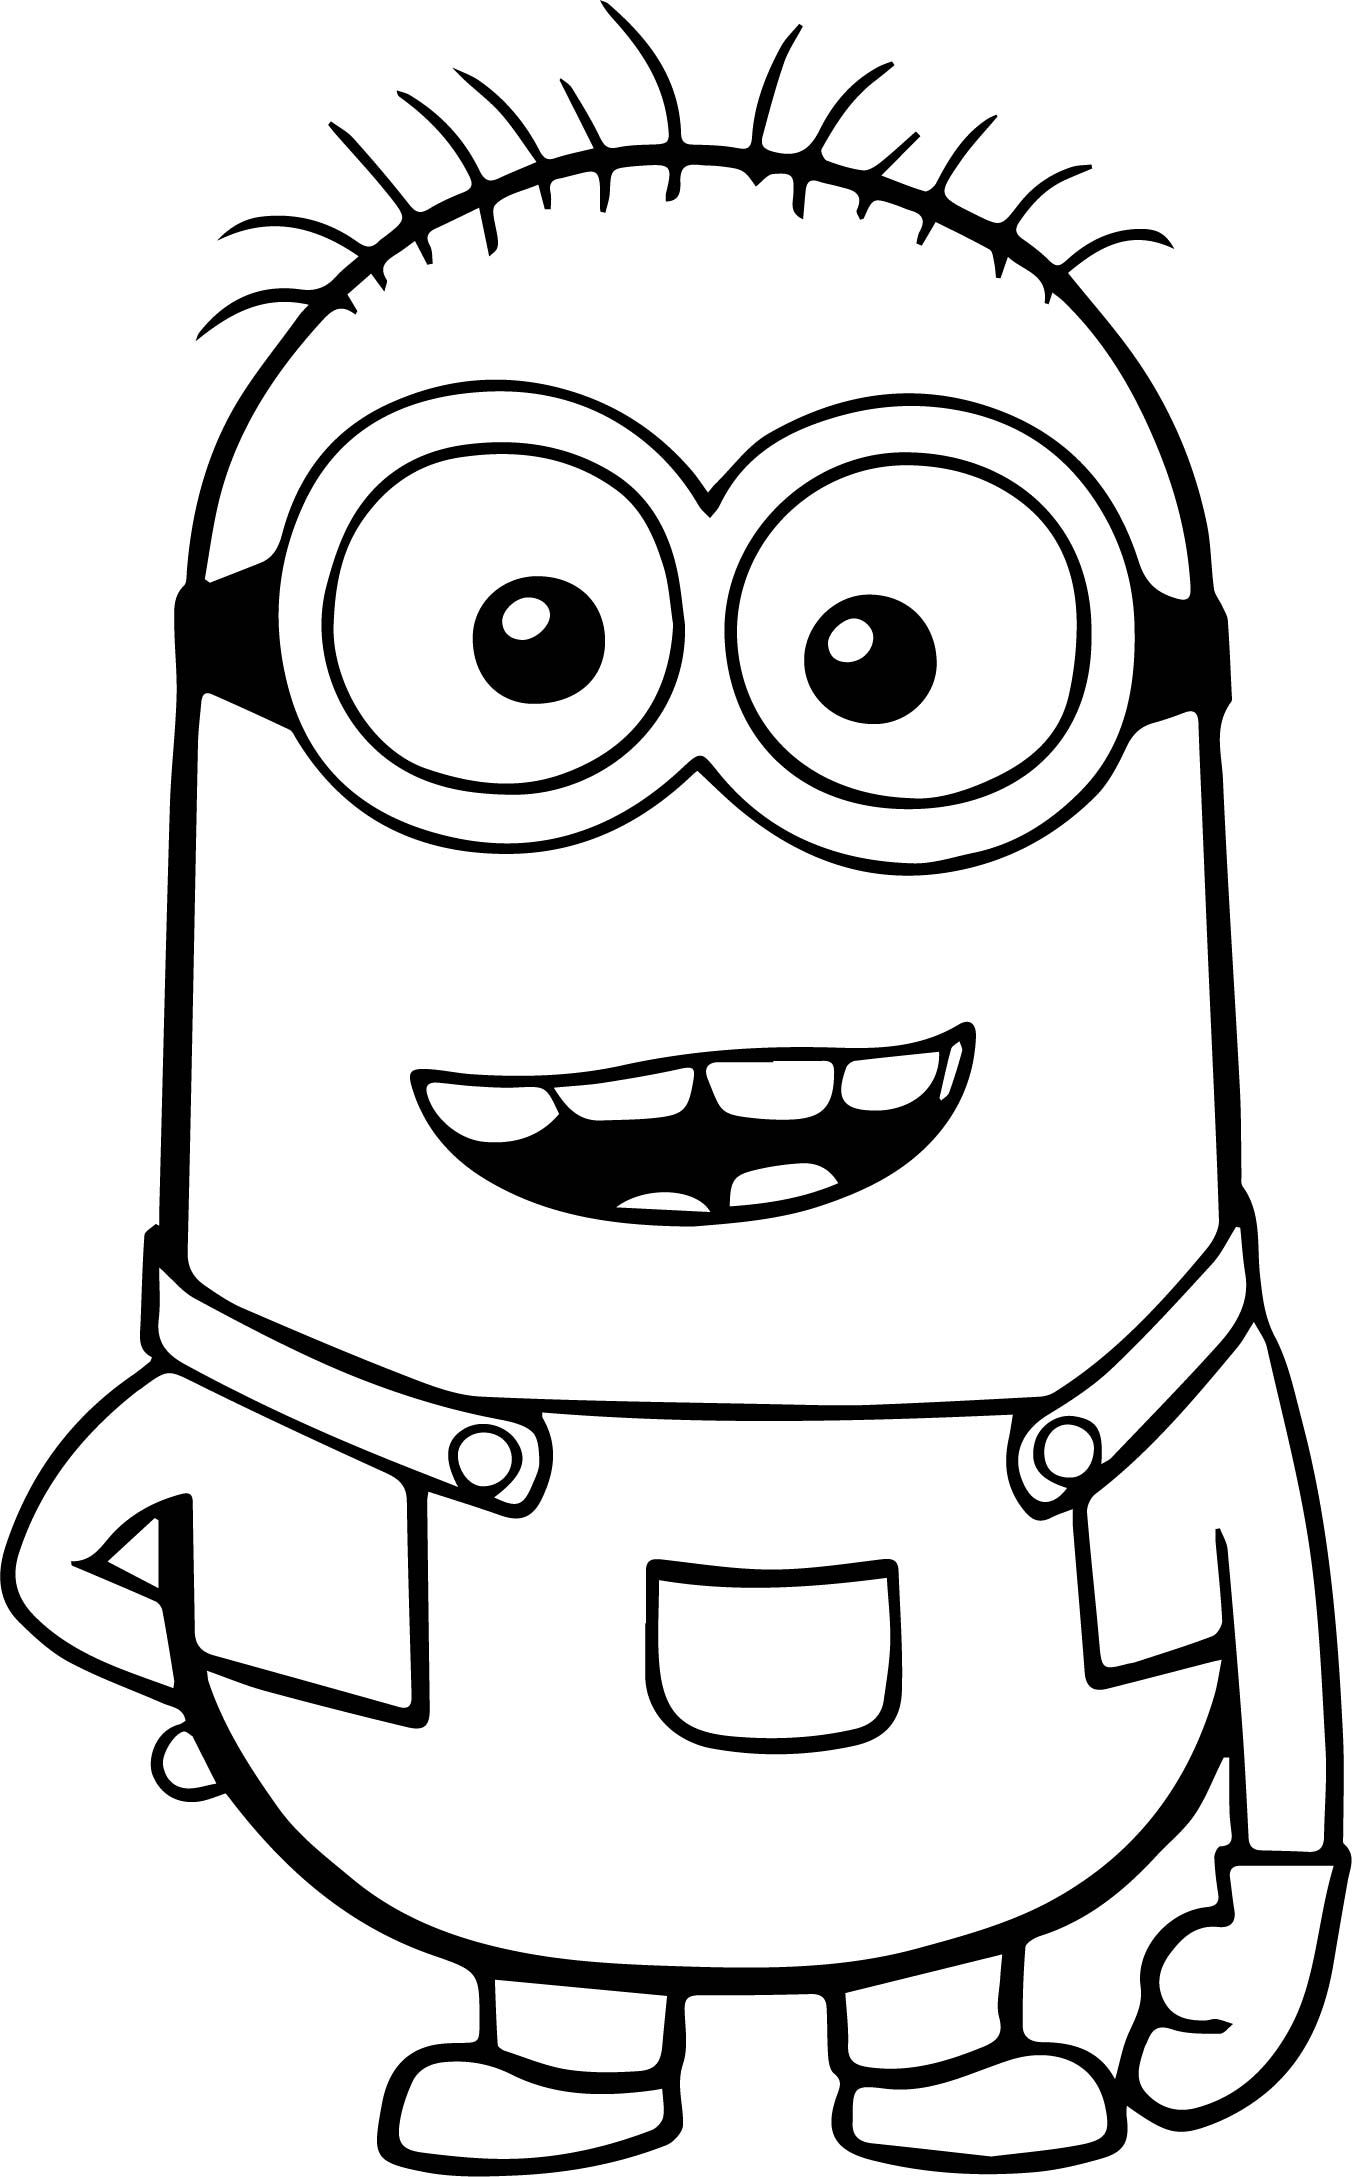 minion pictures to print awesome minion very cute coloring page minion coloring minion pictures print to